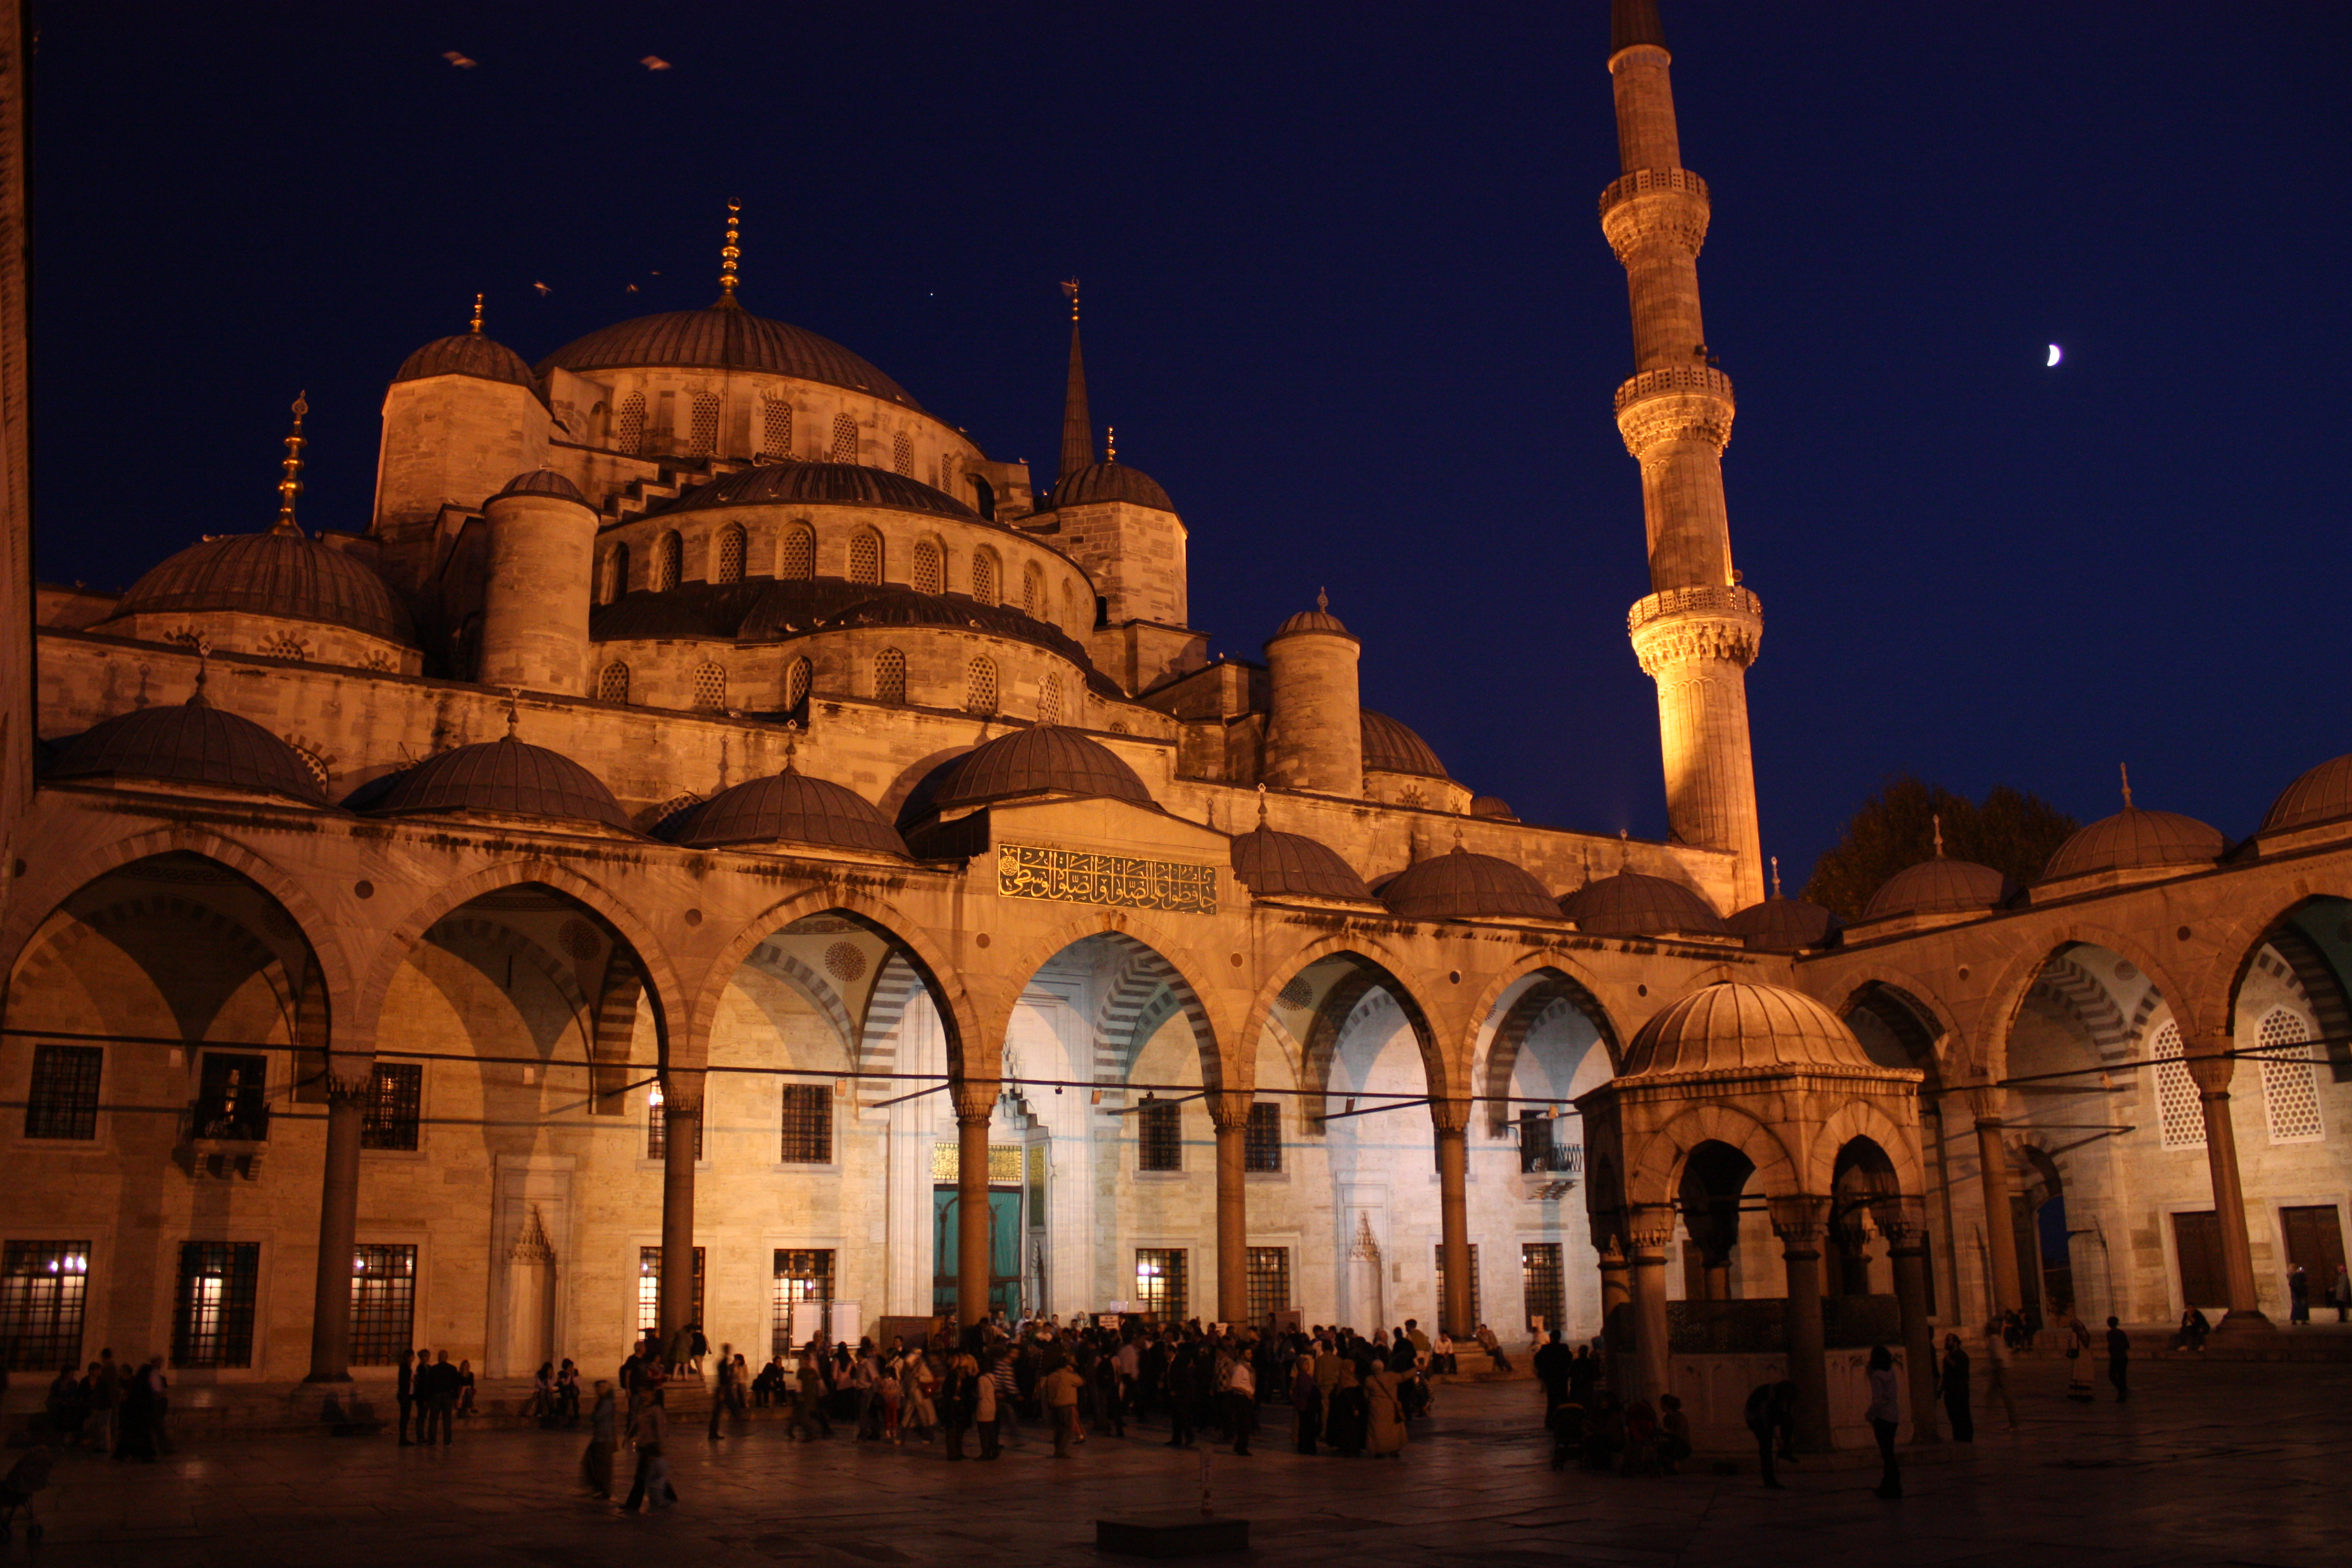 blue mosque 97 reviews of sultan ahmet camii - blue mosque blue mosque is a sight to see people from all over the world come to istanbul to get a glimpse and immerse themselves.